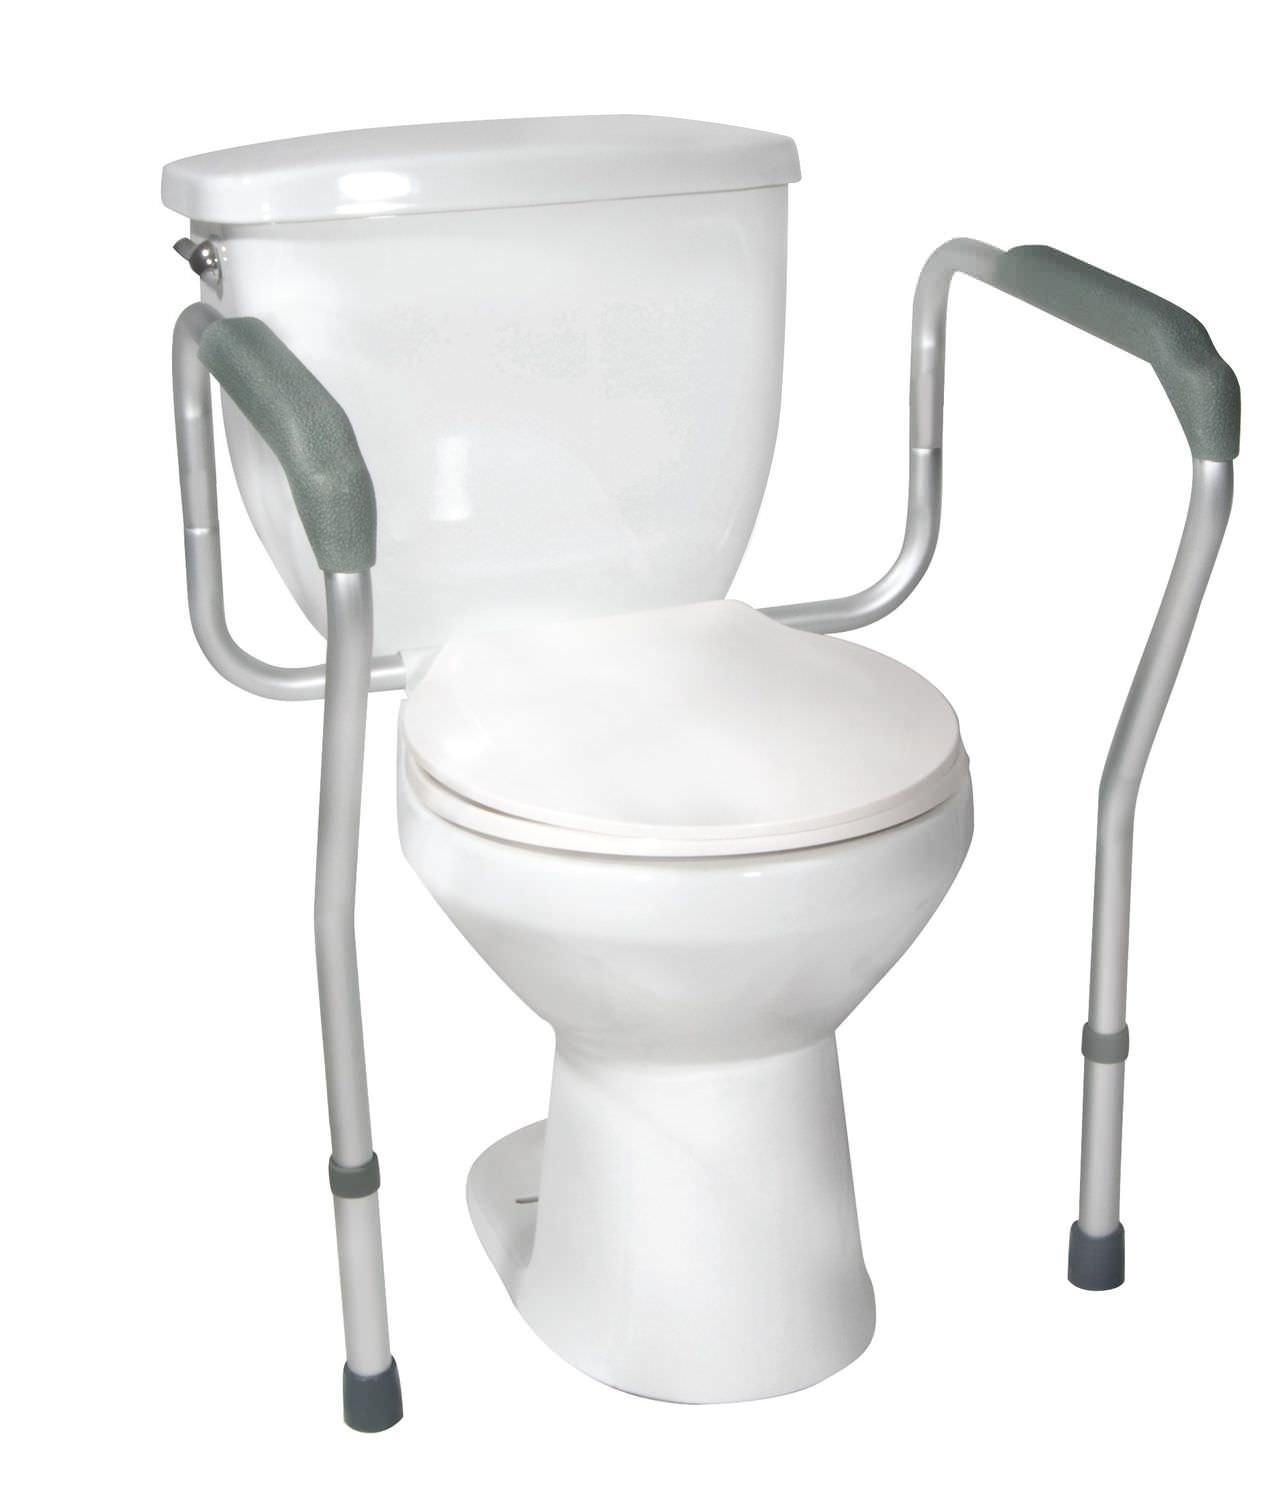 Handicapped Bars For Toilets